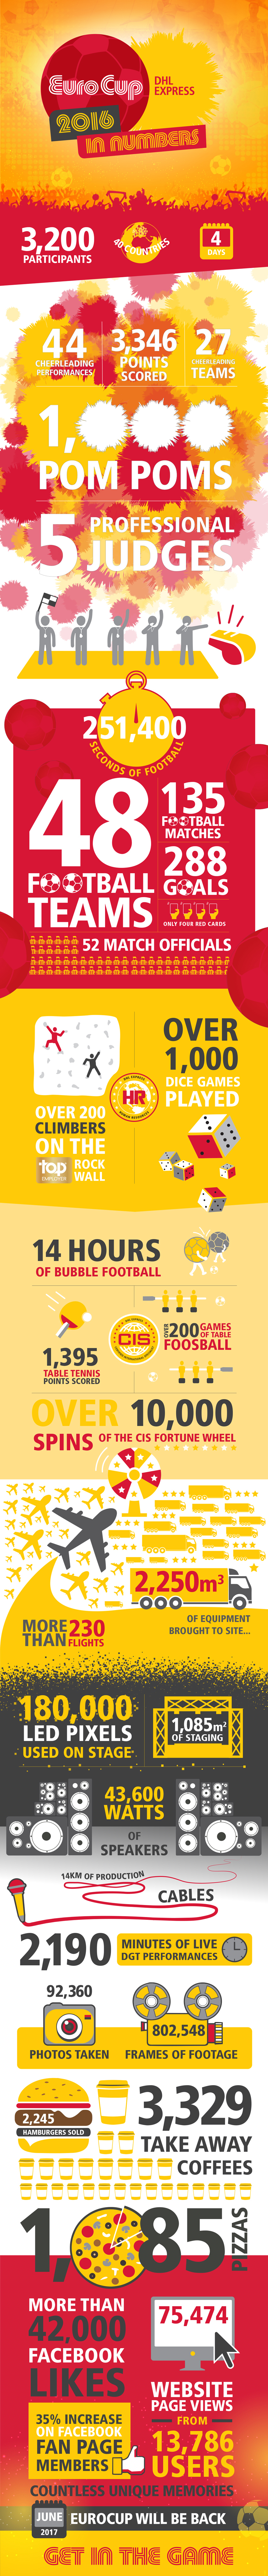 Check out your EuroCup 2016 in numbers!